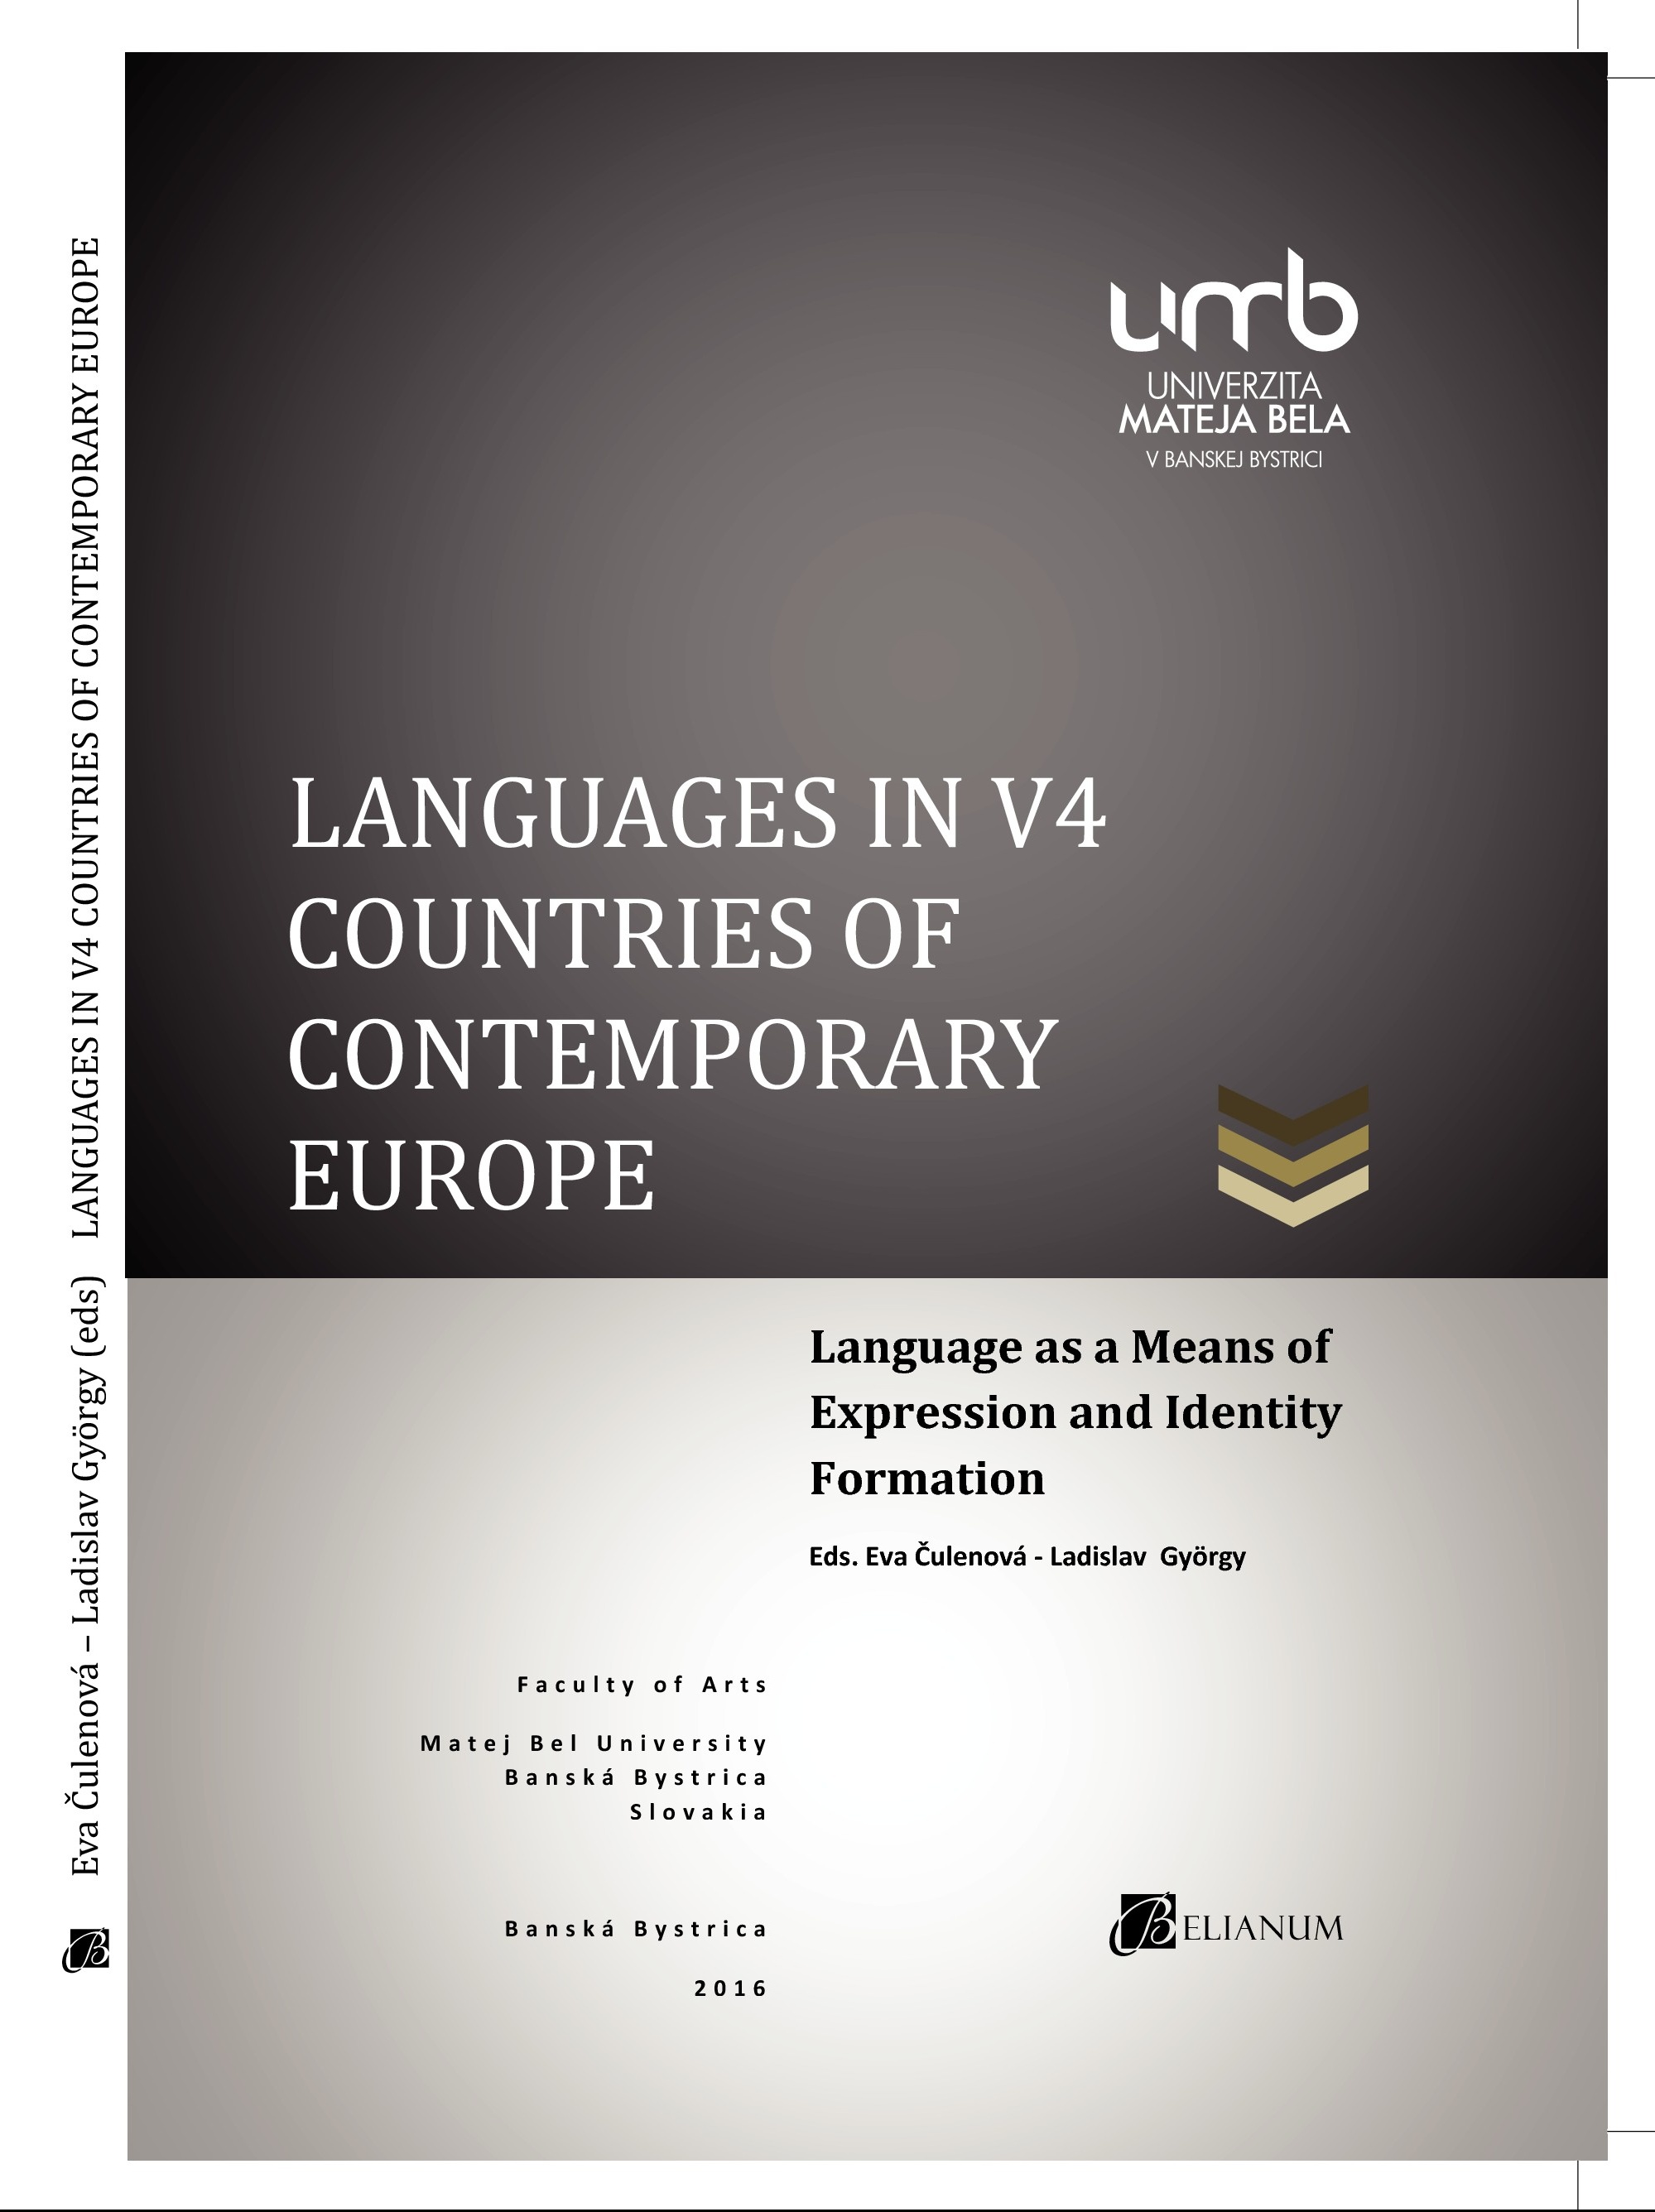 Languages in V4 Countries of contemporary Europe. Languages as a Means of Expression and Identity Formation